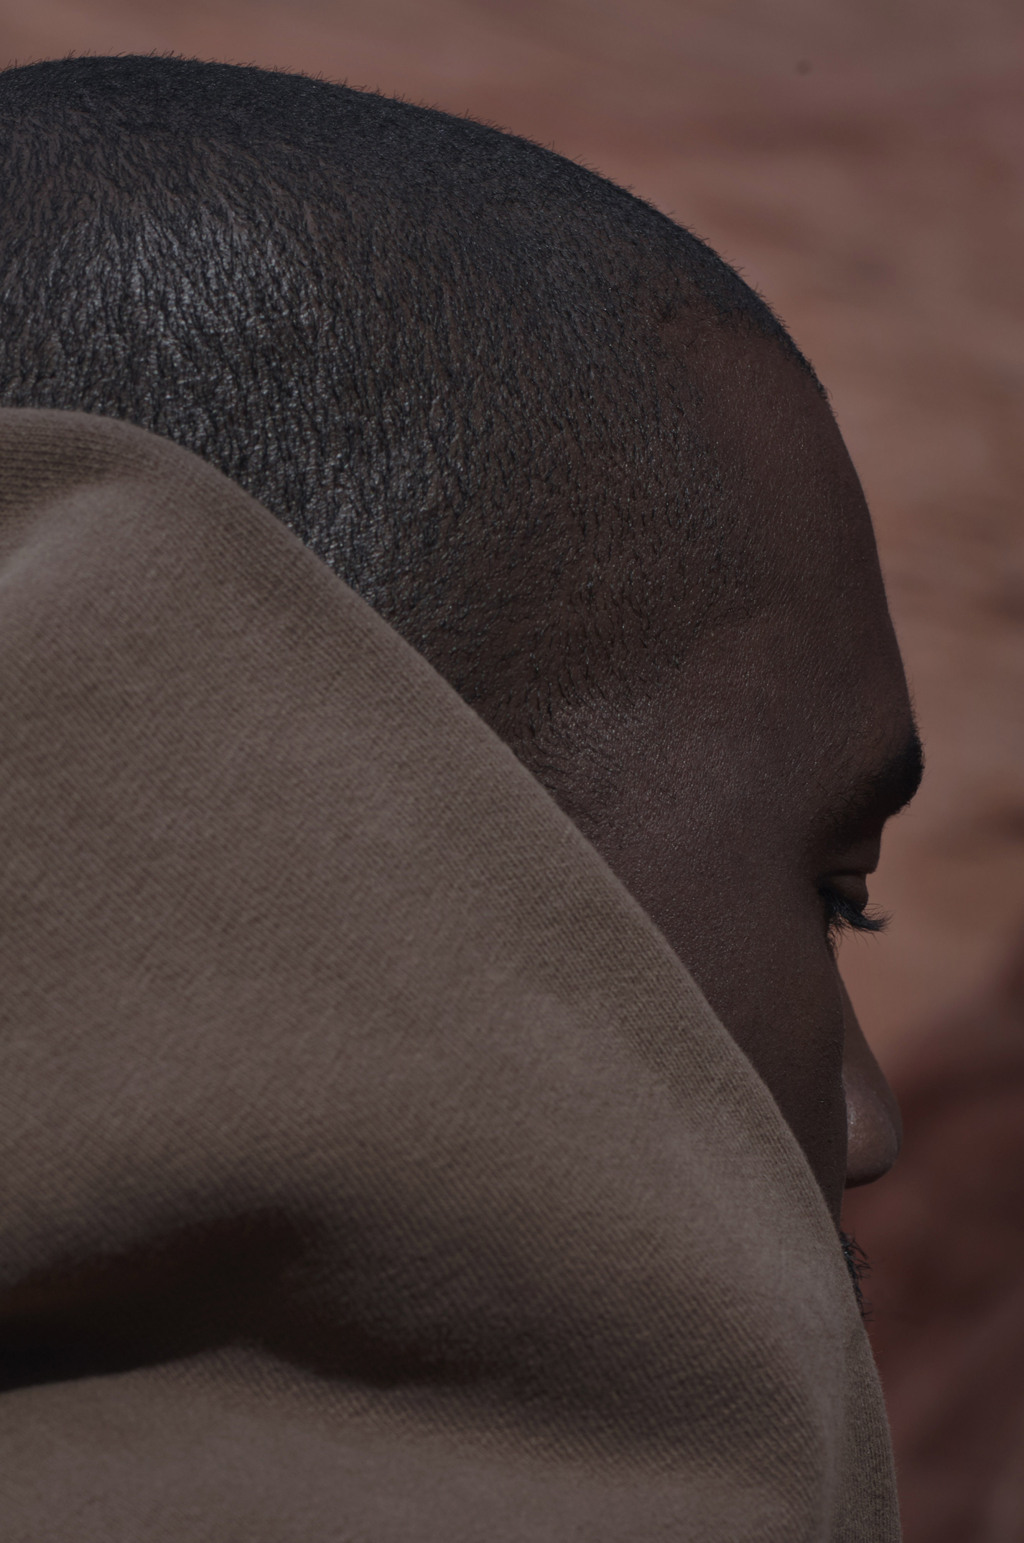 Yeezy Season 2 Zine by Photographer Jackie Nickerson